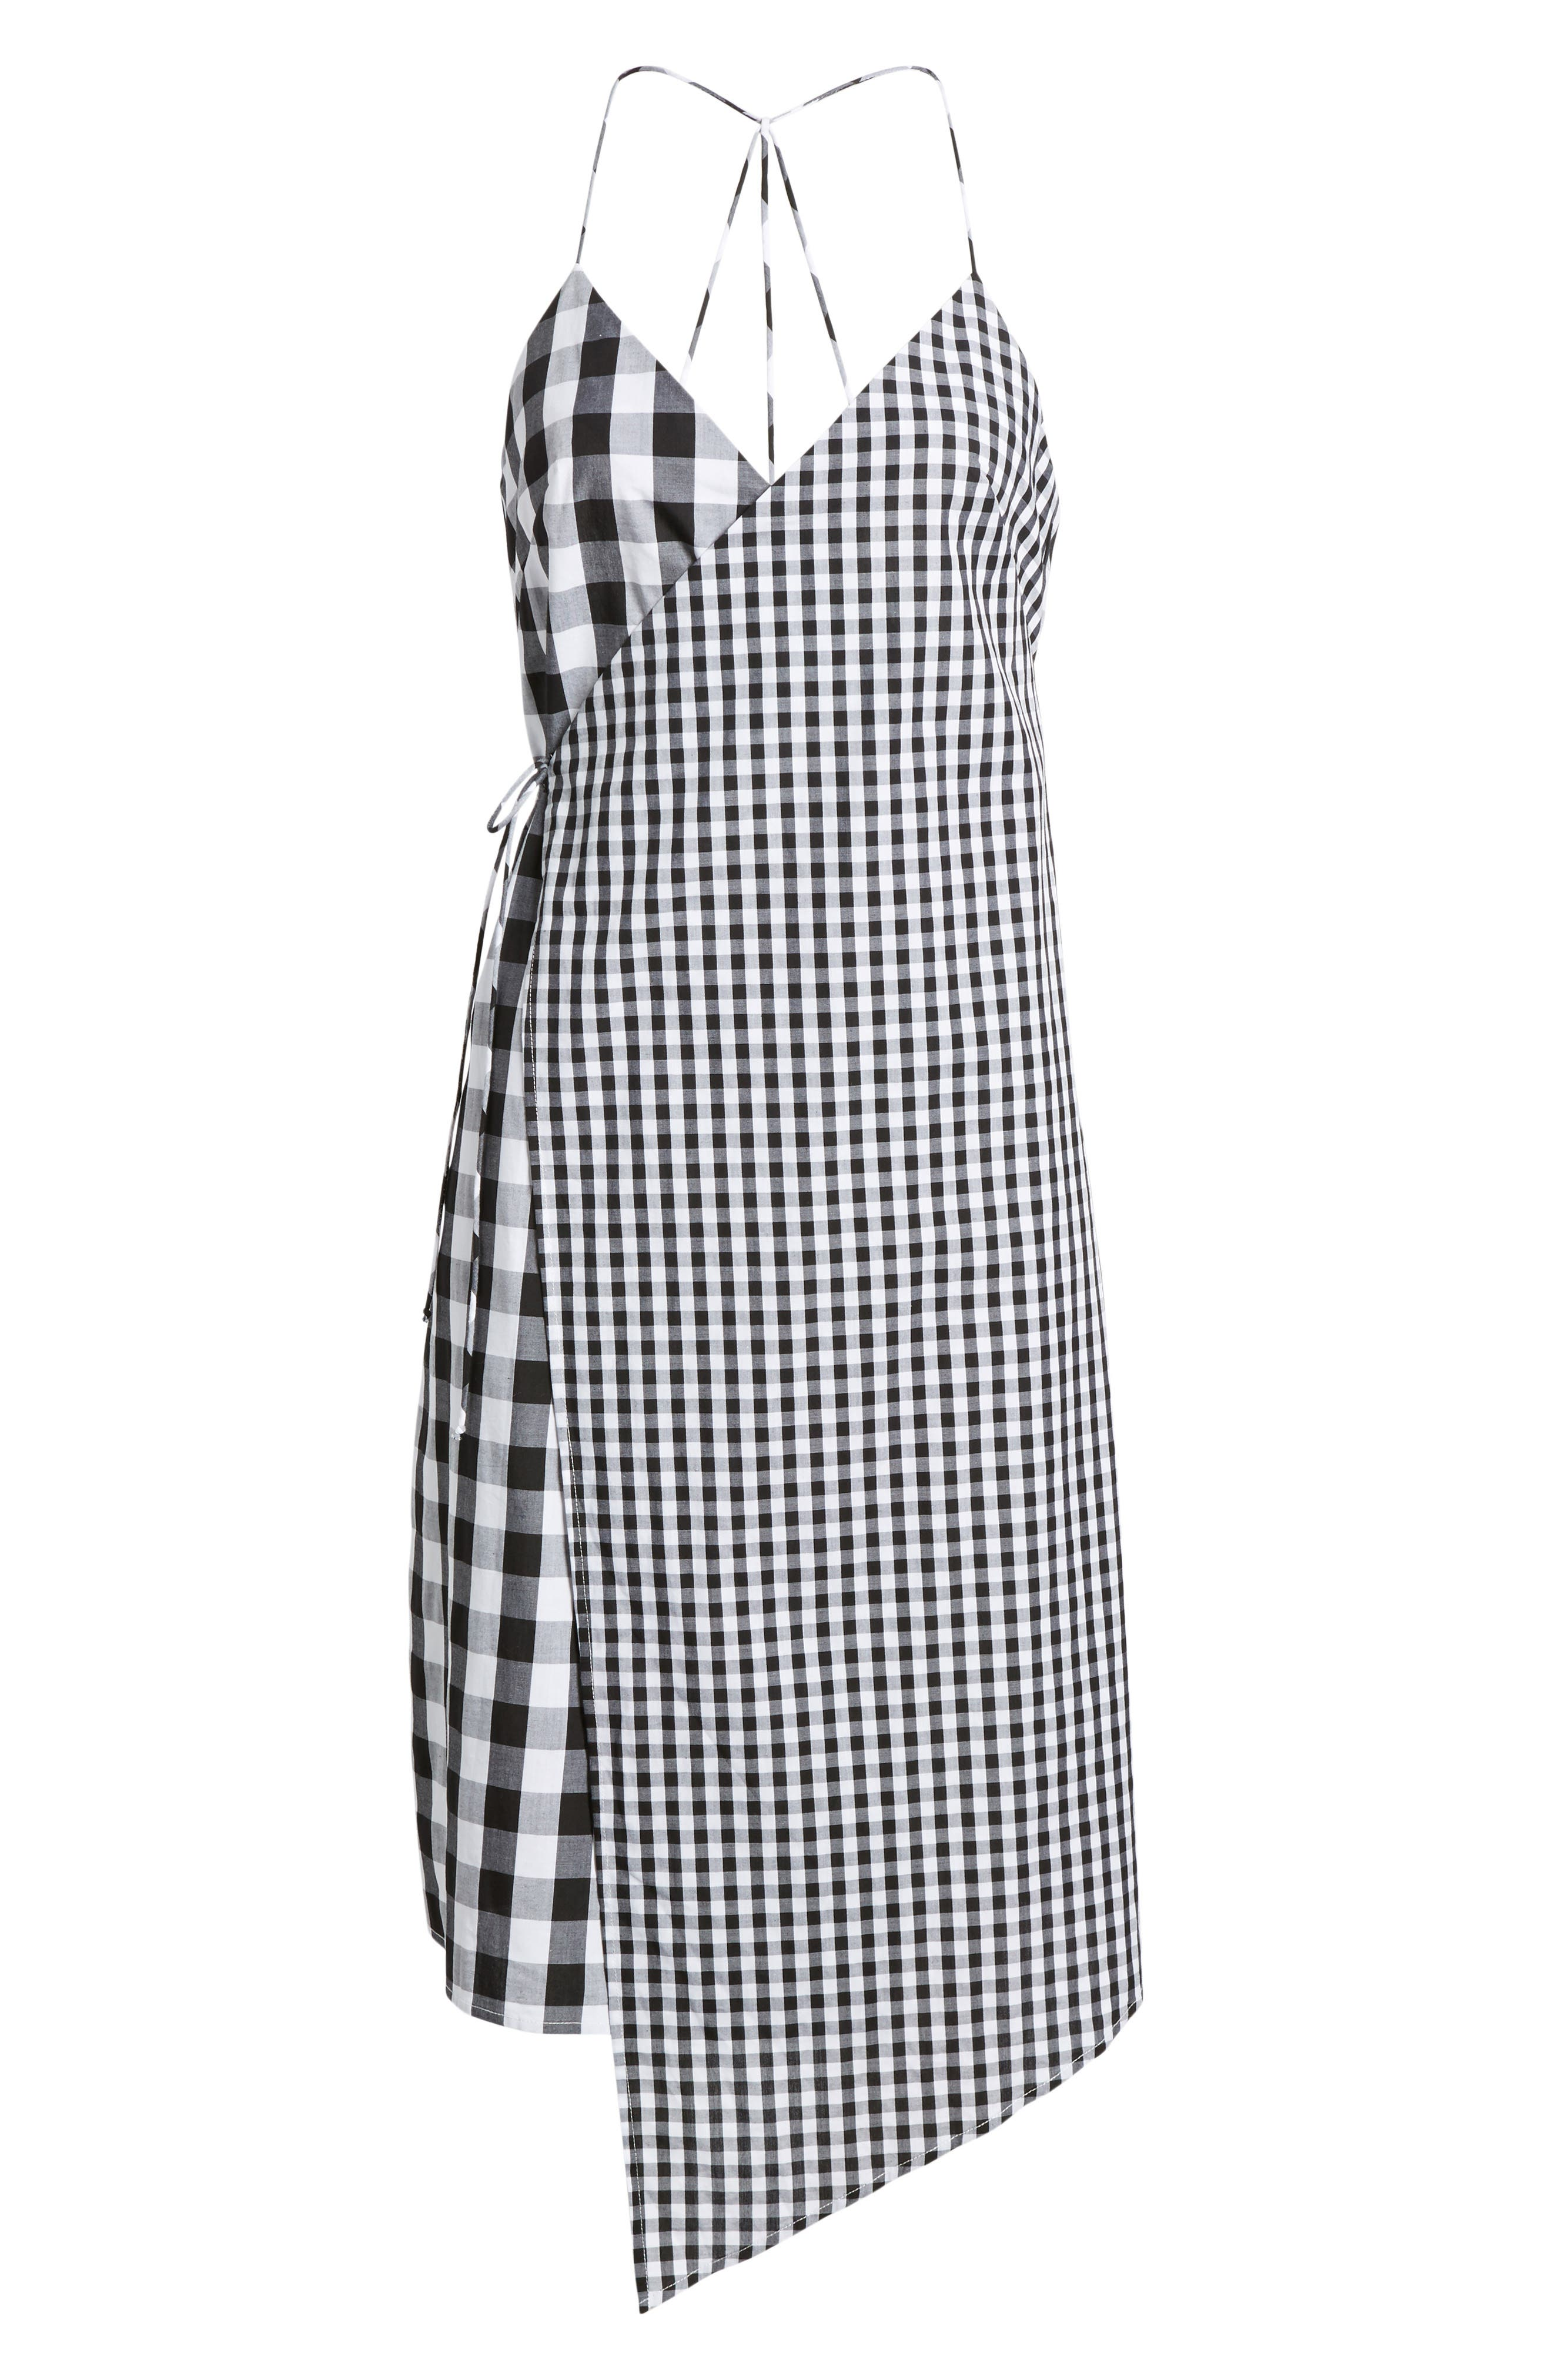 Mixed Gingham Print Wrap Dress,                             Alternate thumbnail 6, color,                             Black Lexi Gingham